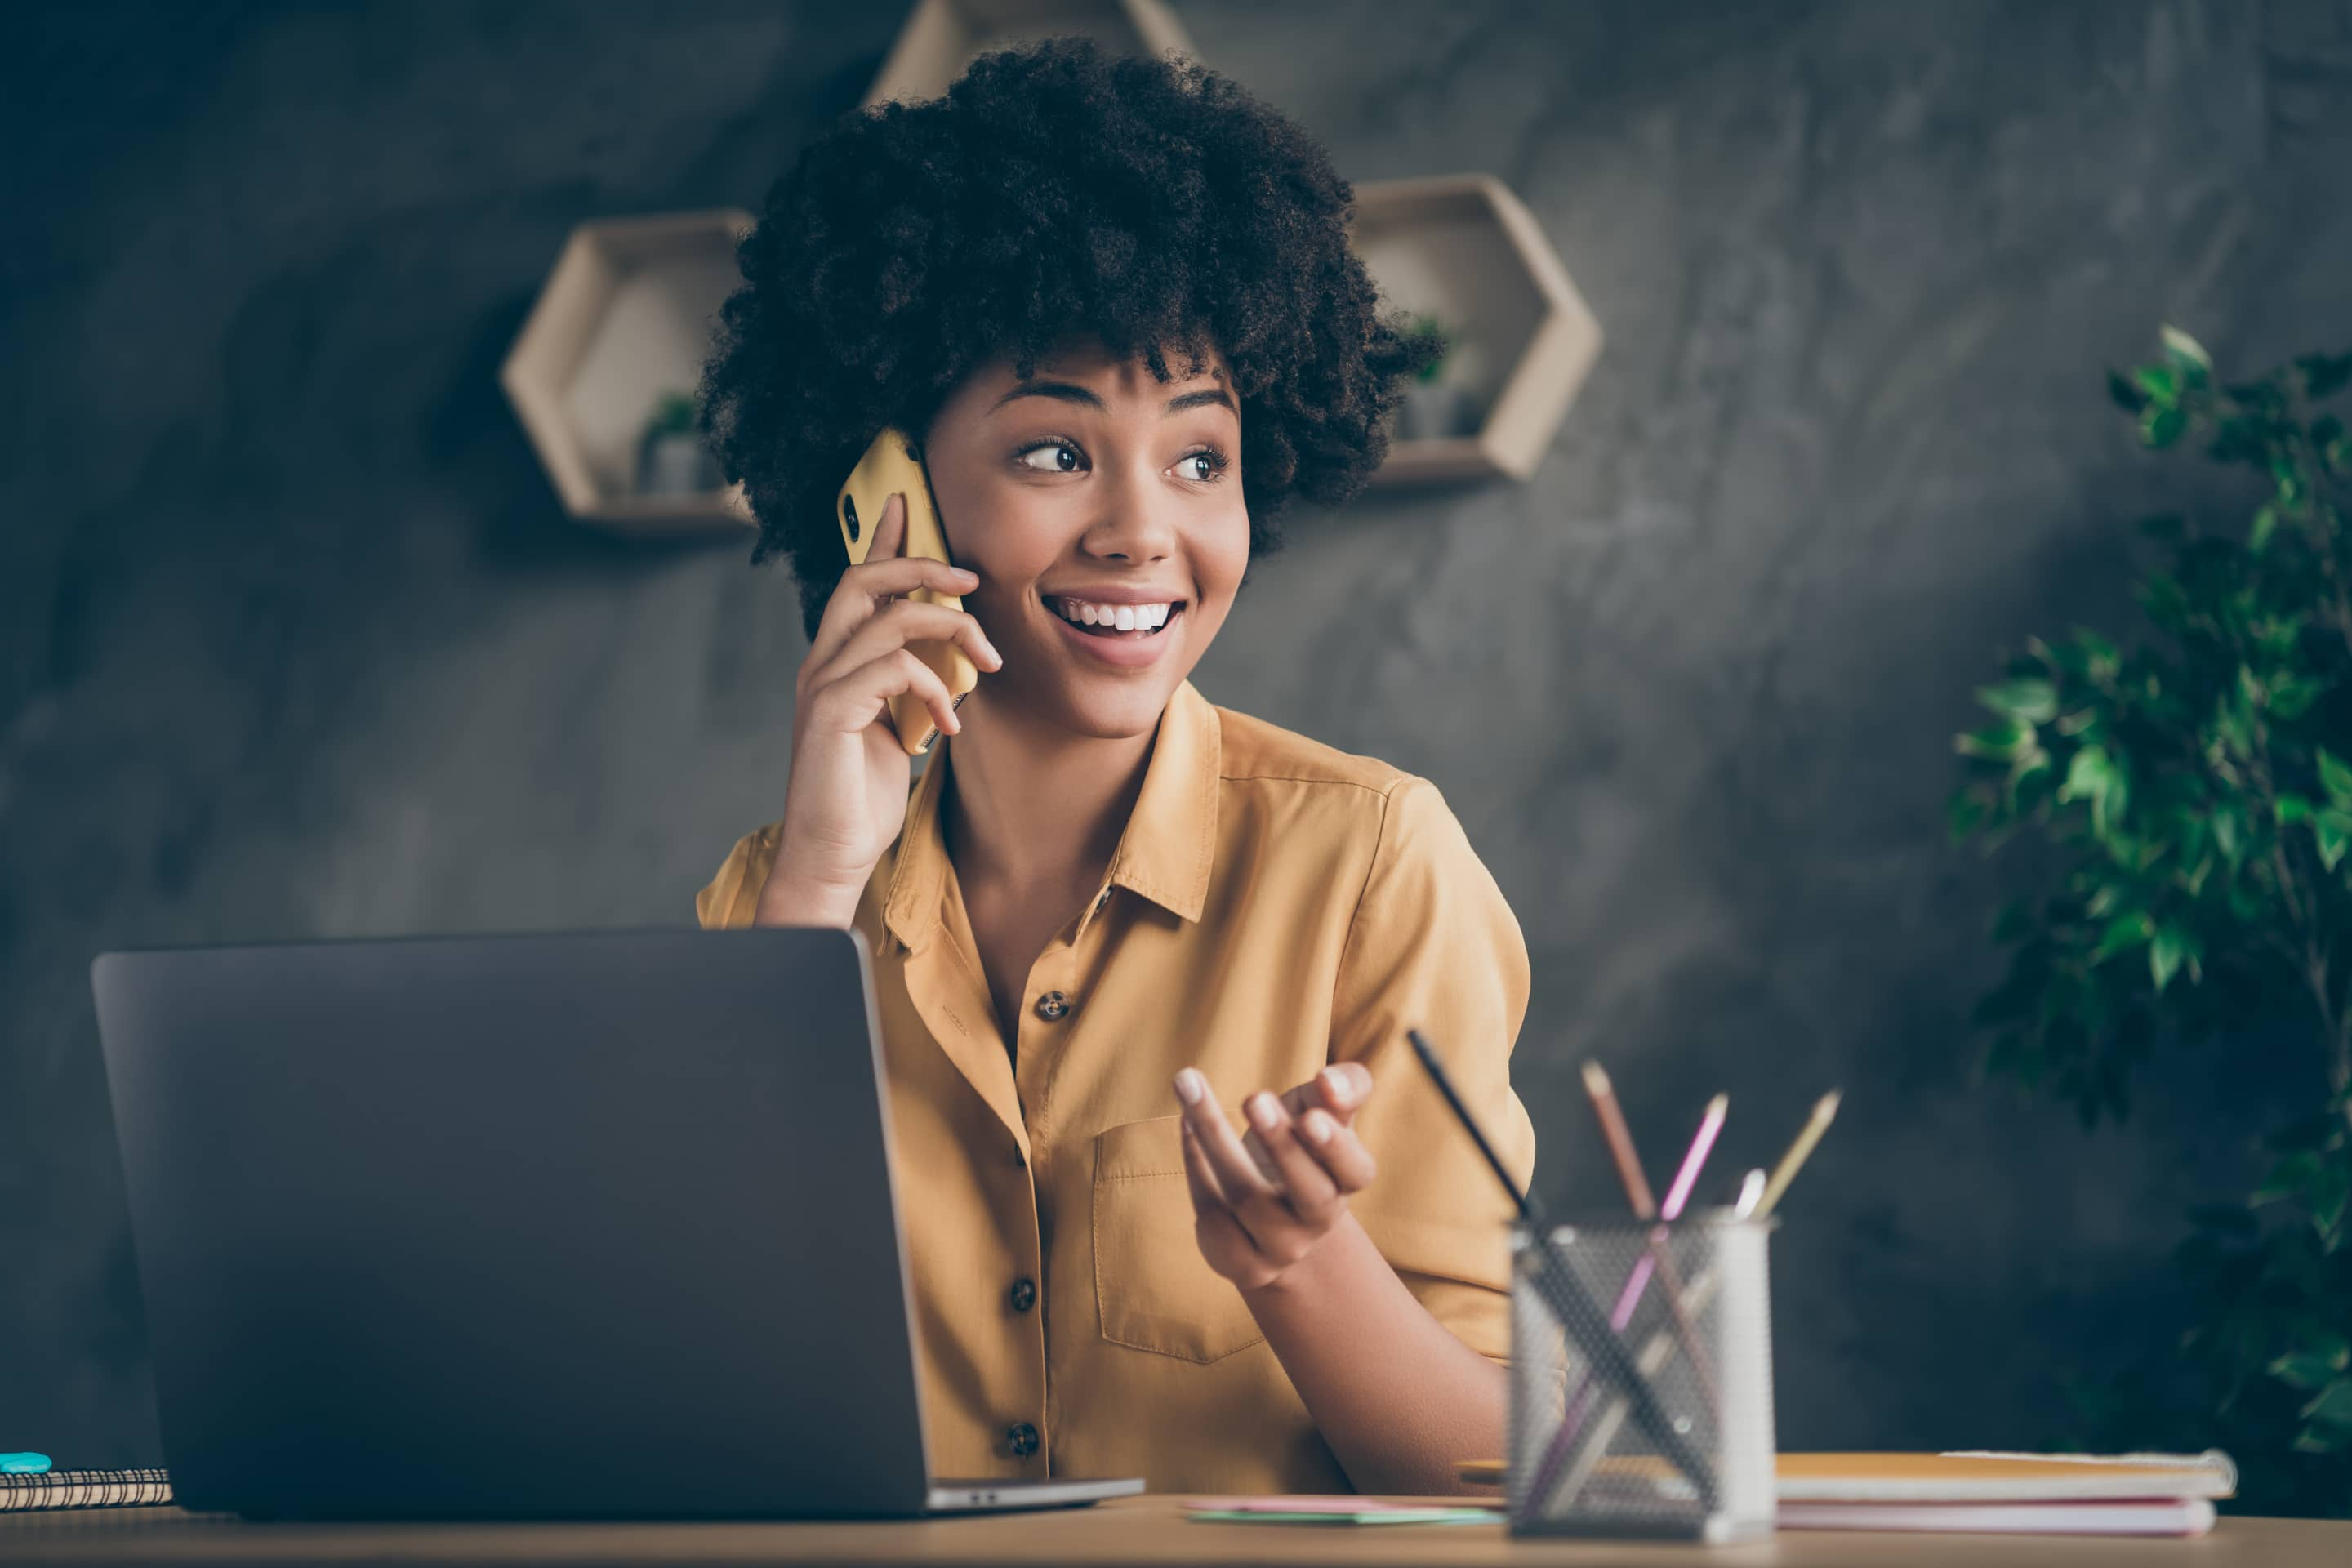 Photo Of Cheerful Positive Mixed Race Pretty Woman Working As Content Manager Arranging With Her Customers By Phone Smiling Toothily